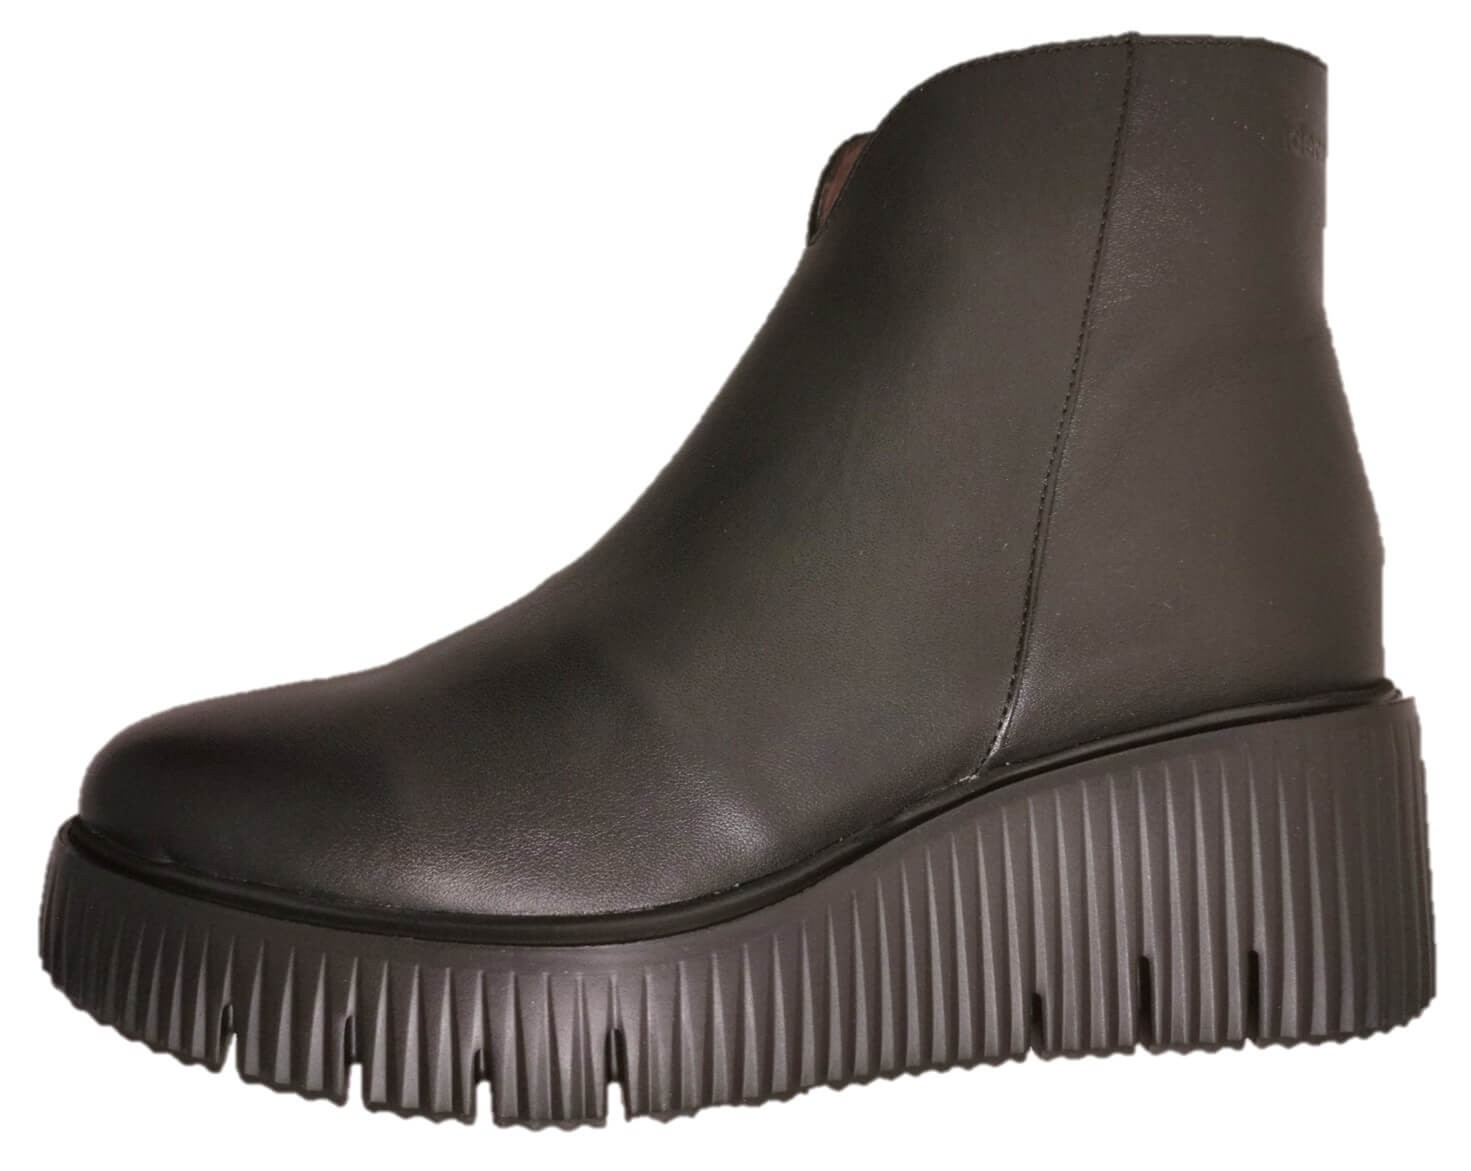 cancan boots Google Search